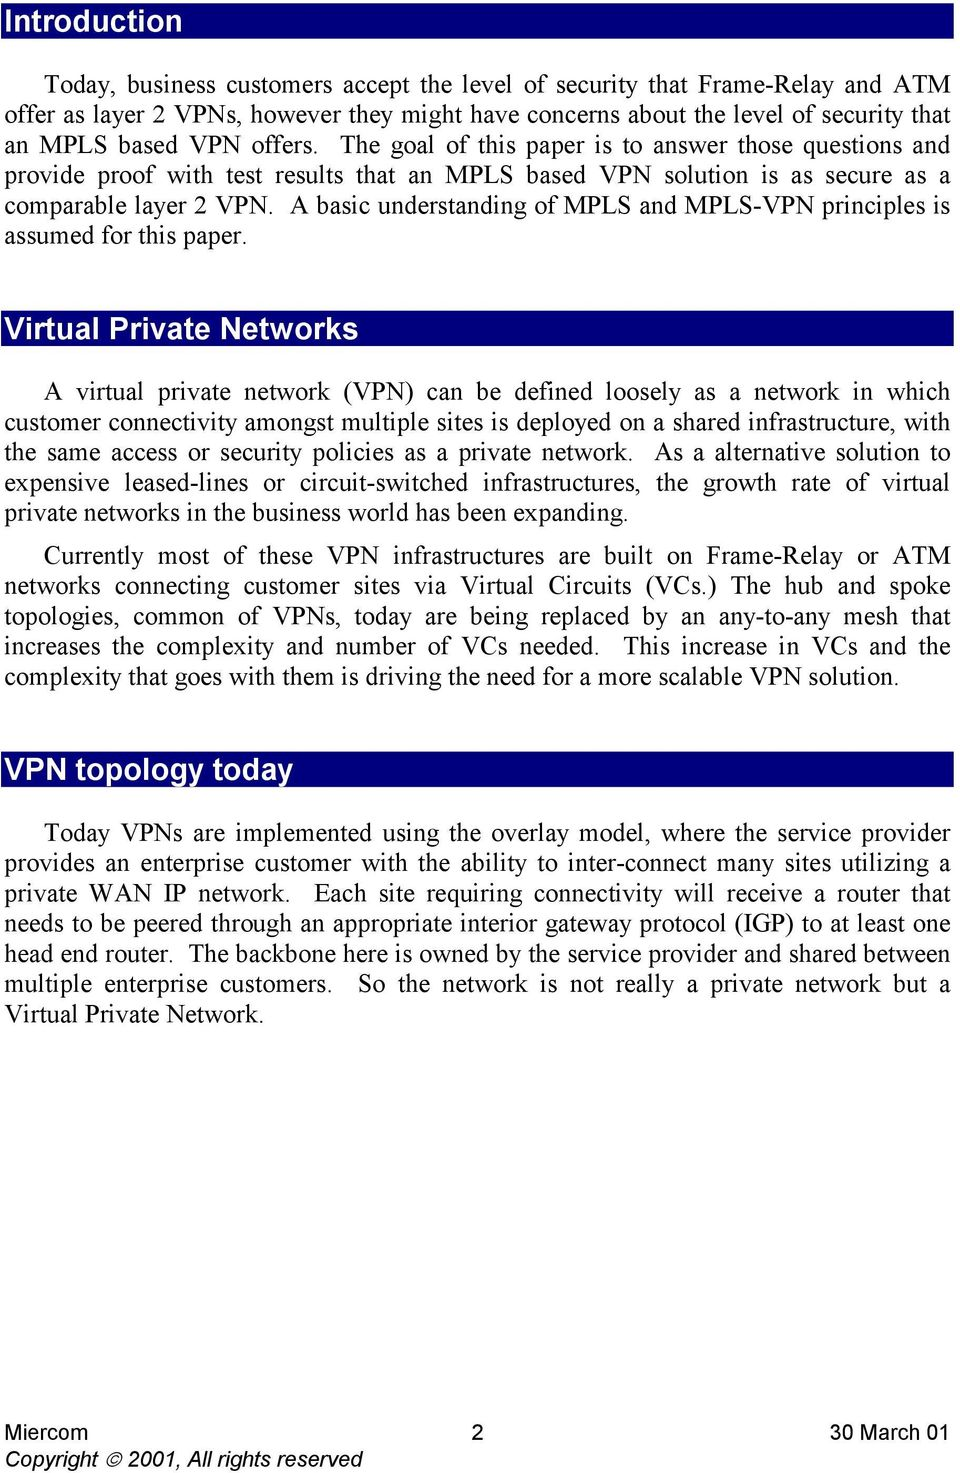 A basic understanding of MPLS and MPLS-VPN principles is assumed for this paper.